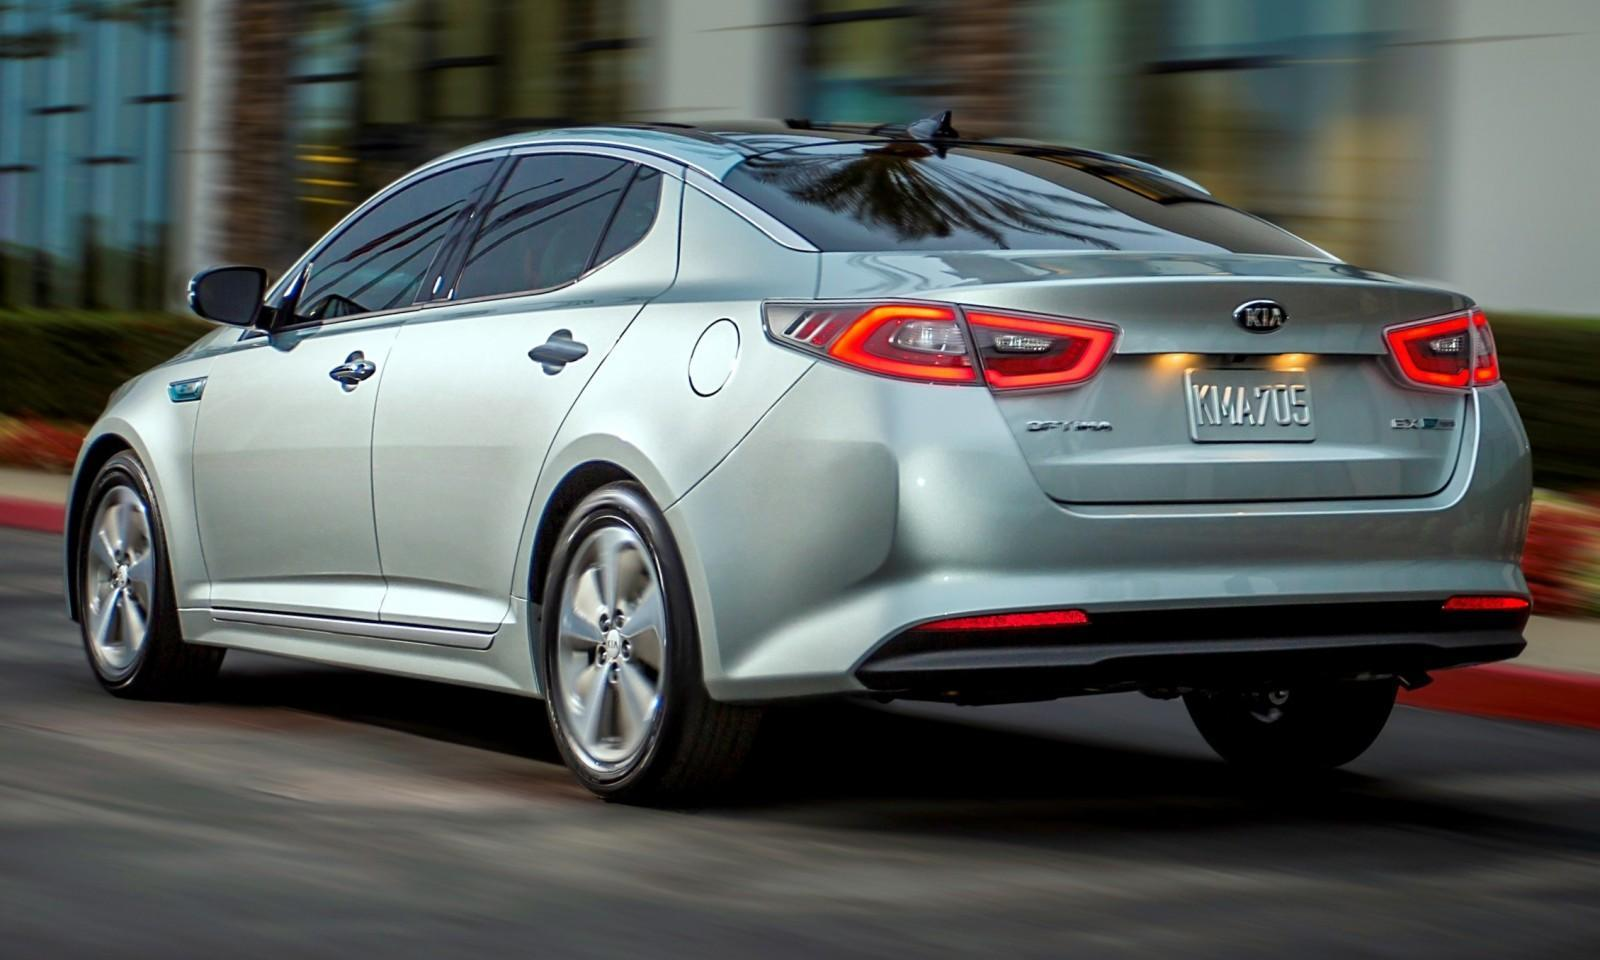 2014 Kia Optima Hybrid Updated With New Grille and LEDs Front and Rear - Specs, Features and Pricing 17